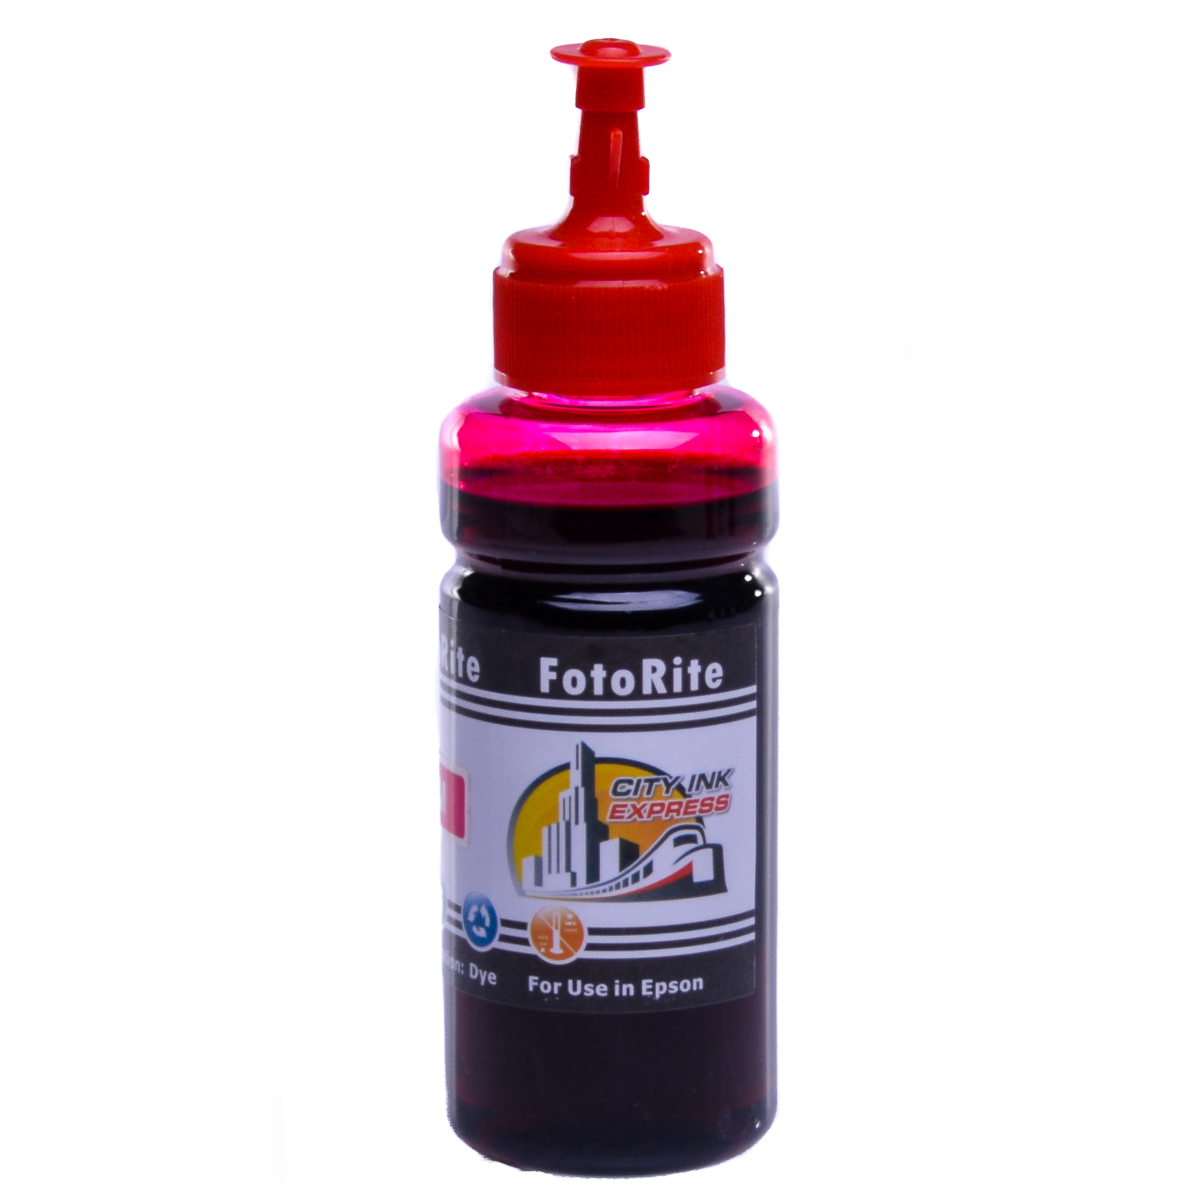 Cheap Magenta dye ink refill replaces Epson Stylus R200 - T0483